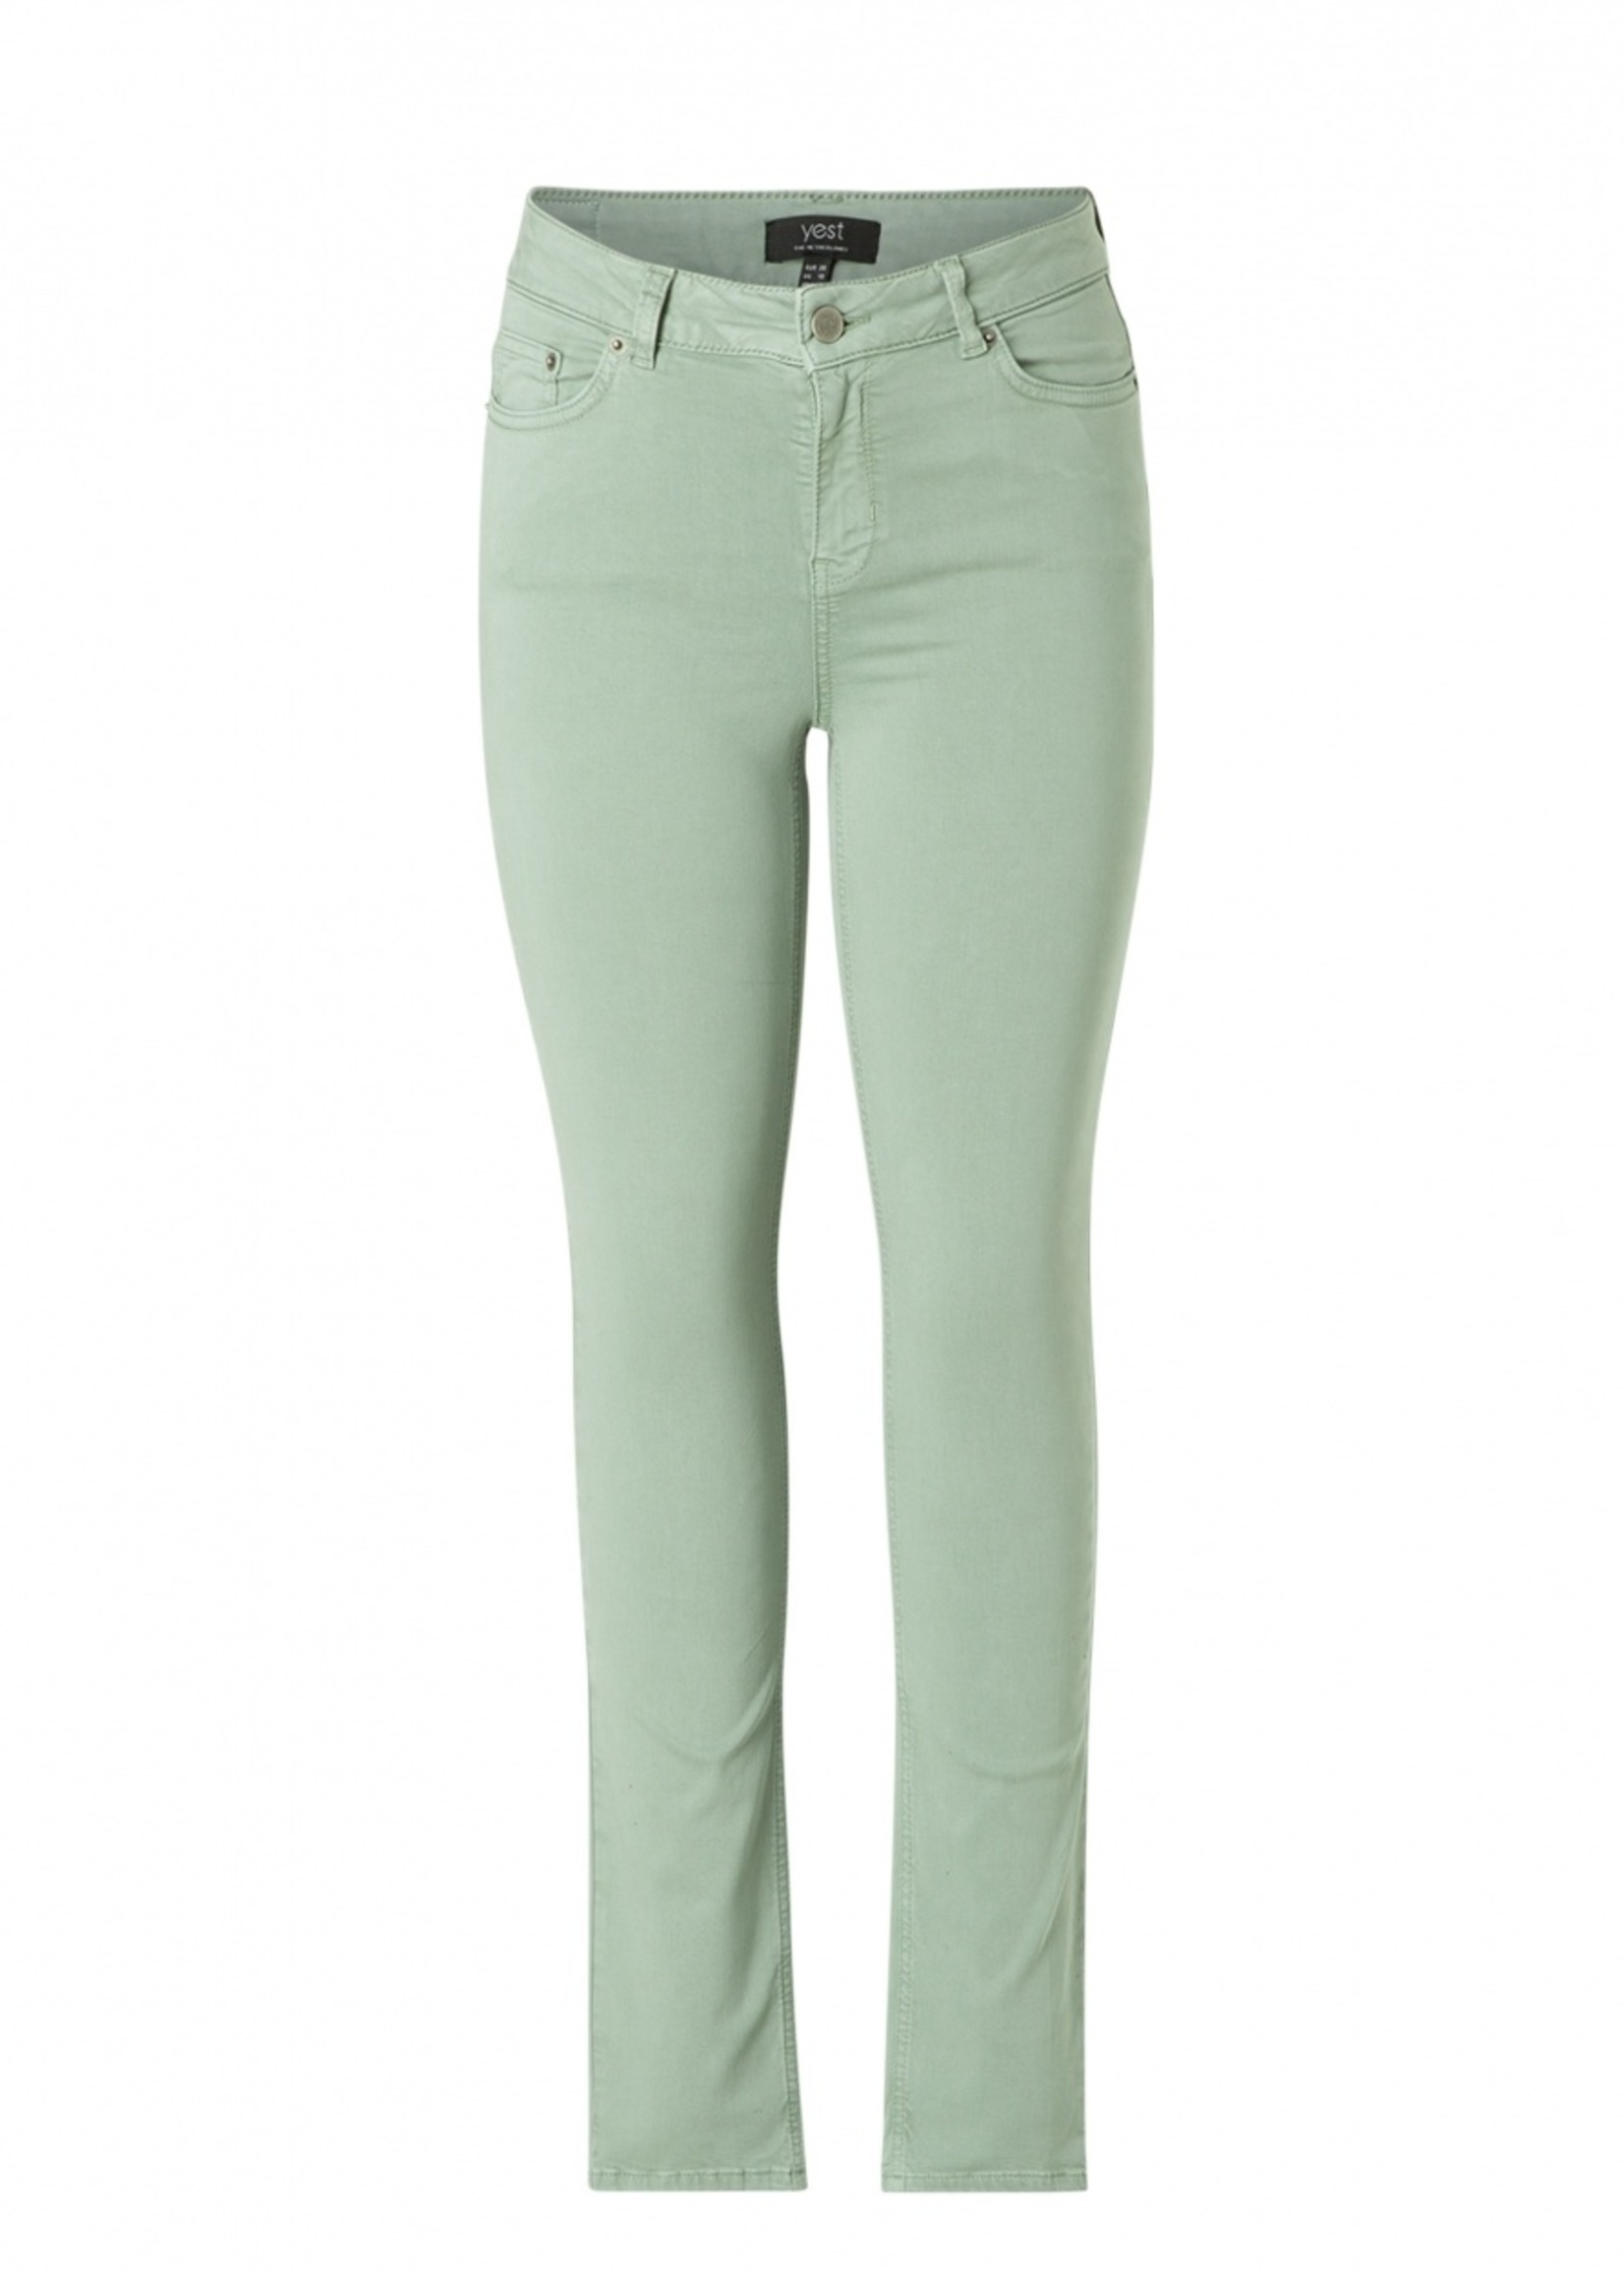 Yest Yest Mell Jeans Greyed Mint